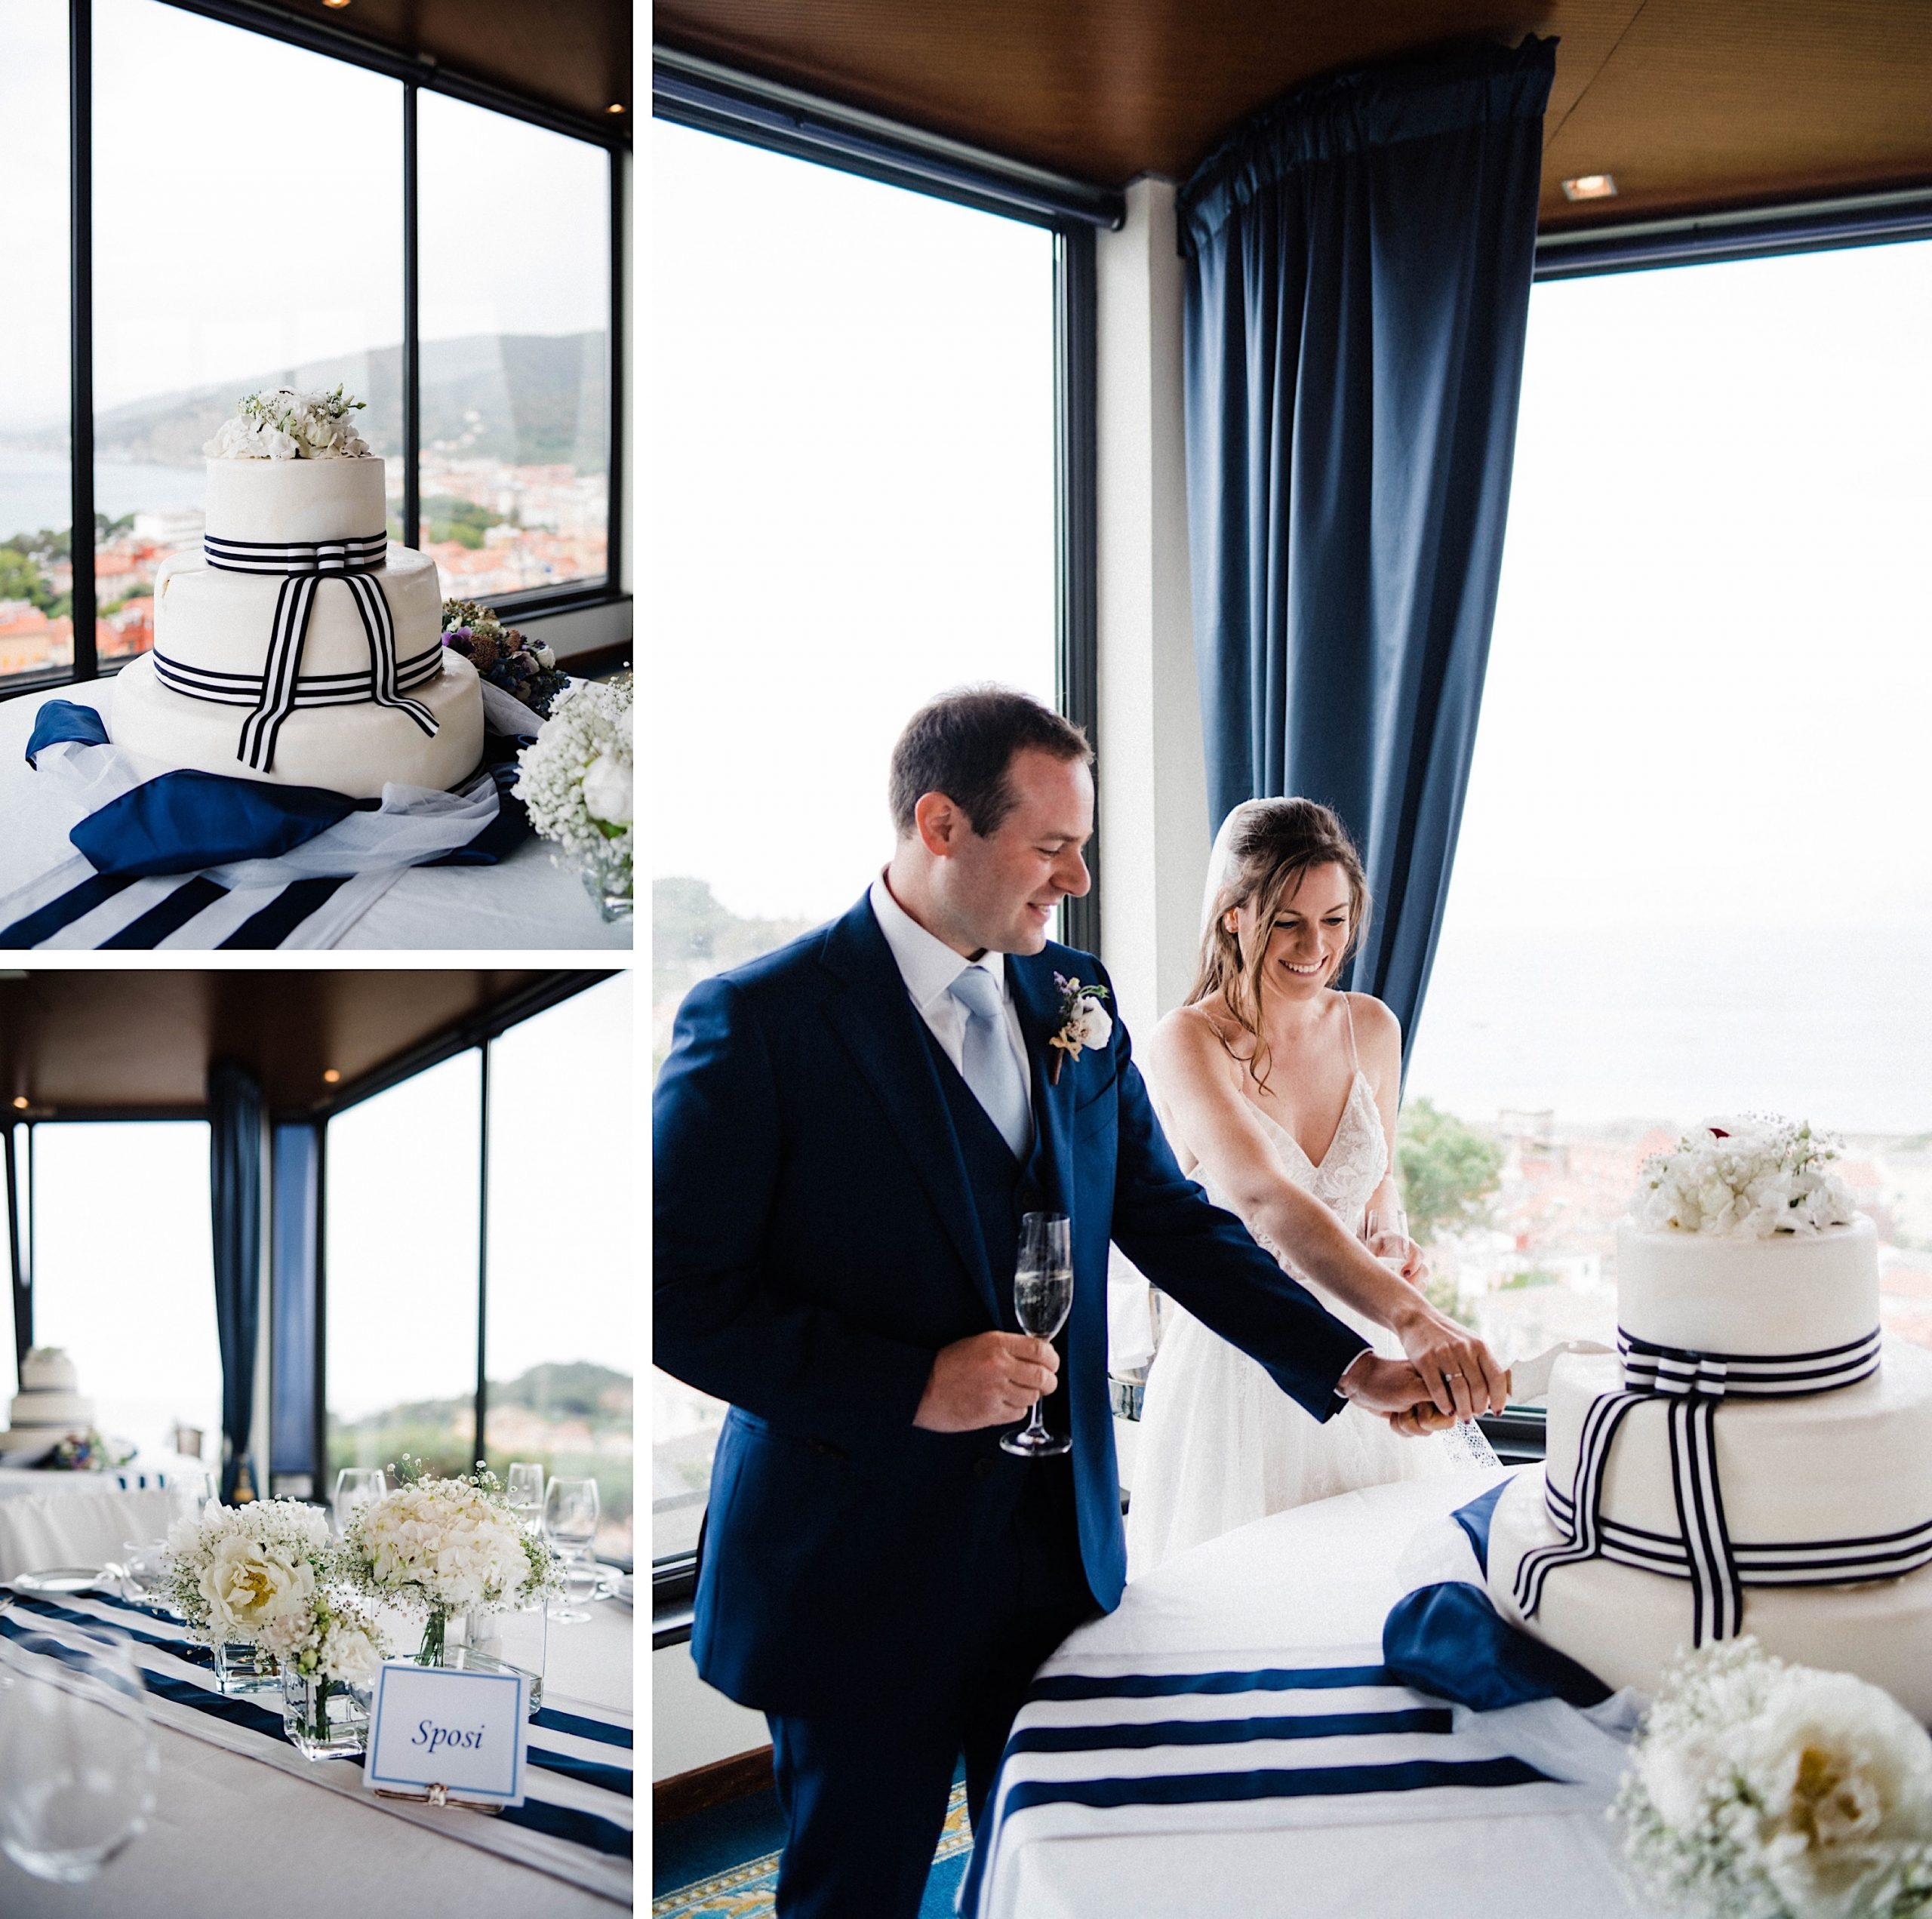 A collage of photos from a Destination Wedding Reception at the Hotel Vis À Vis in Sestri Levante, including of the cake, flower arrangements and the cake cutting.